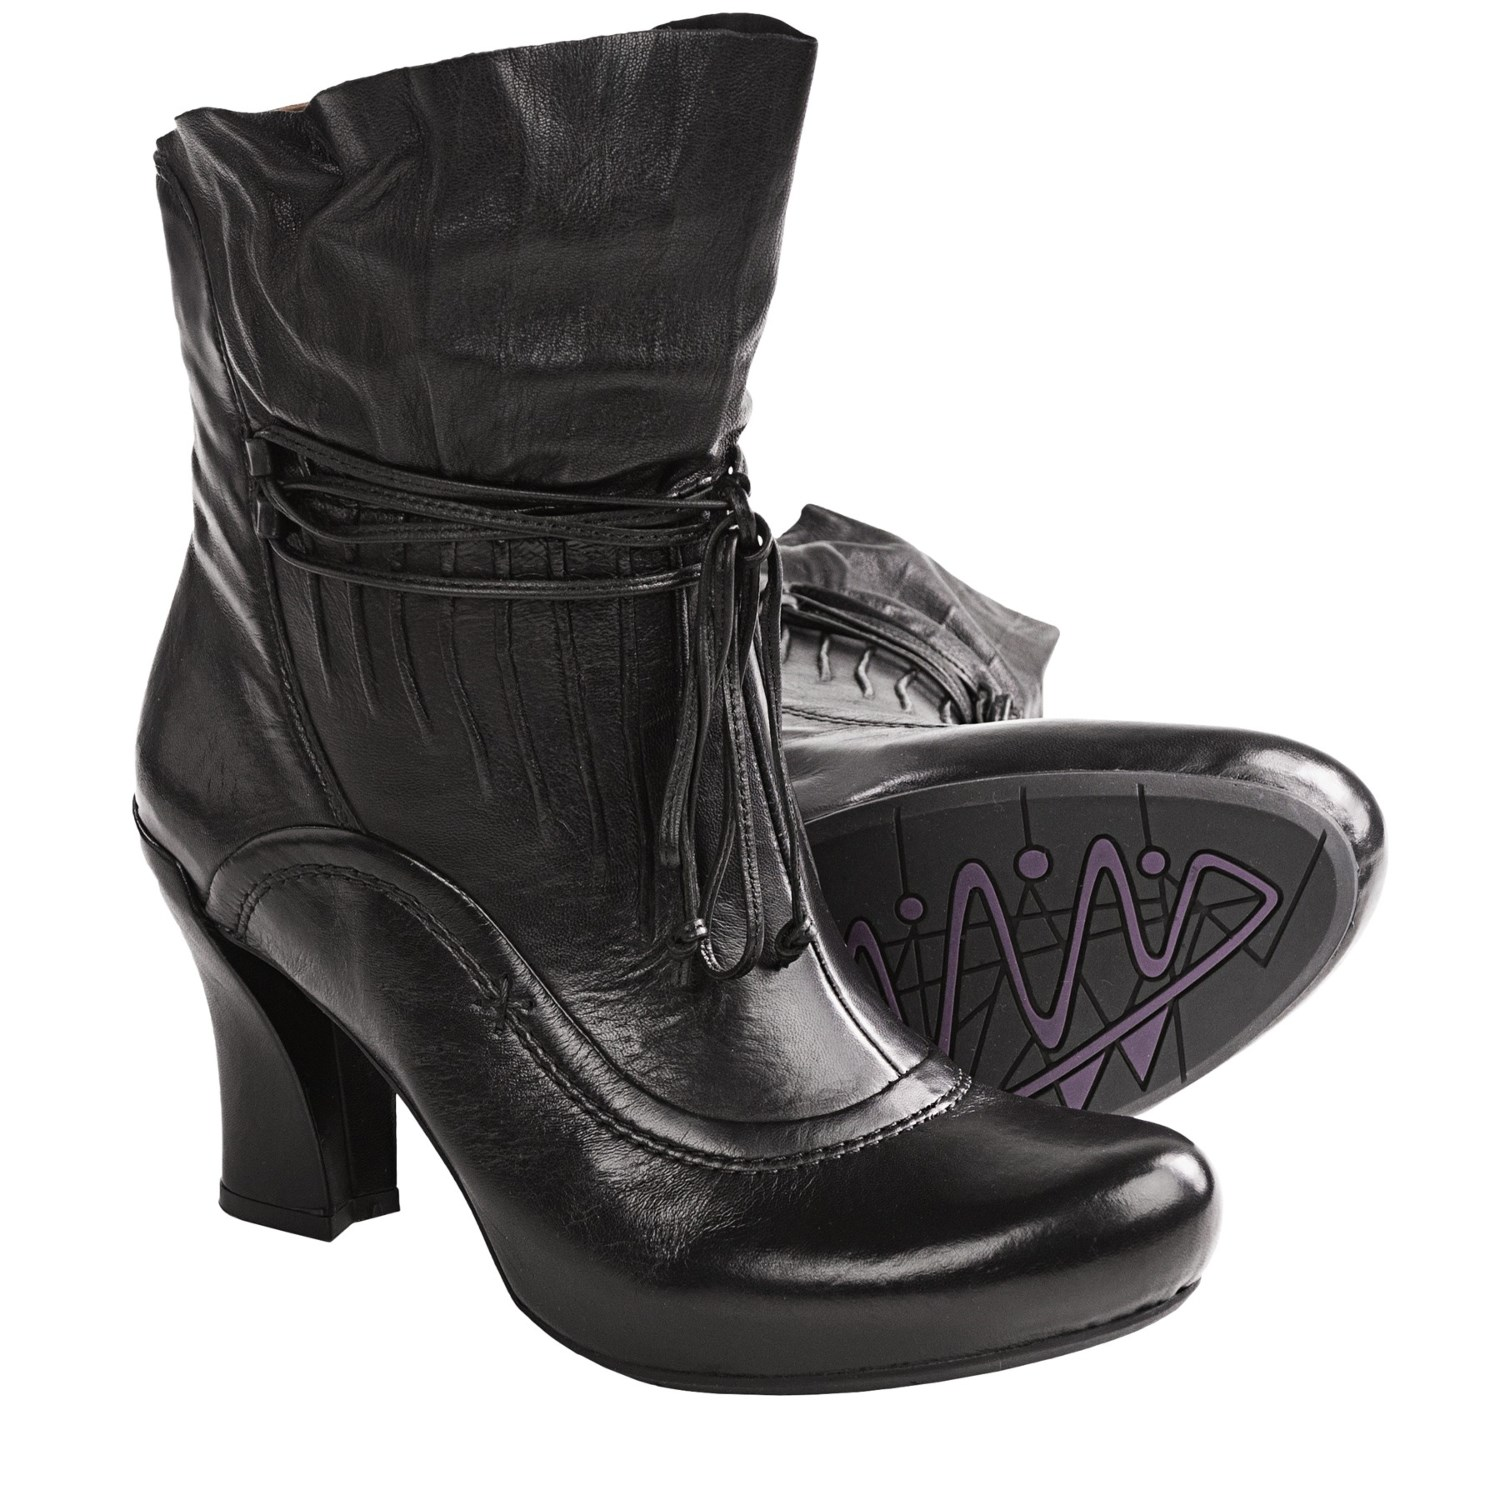 7f73d03e0aae Earthies Eleganza Ankle Boots For Women 6114f Save 57